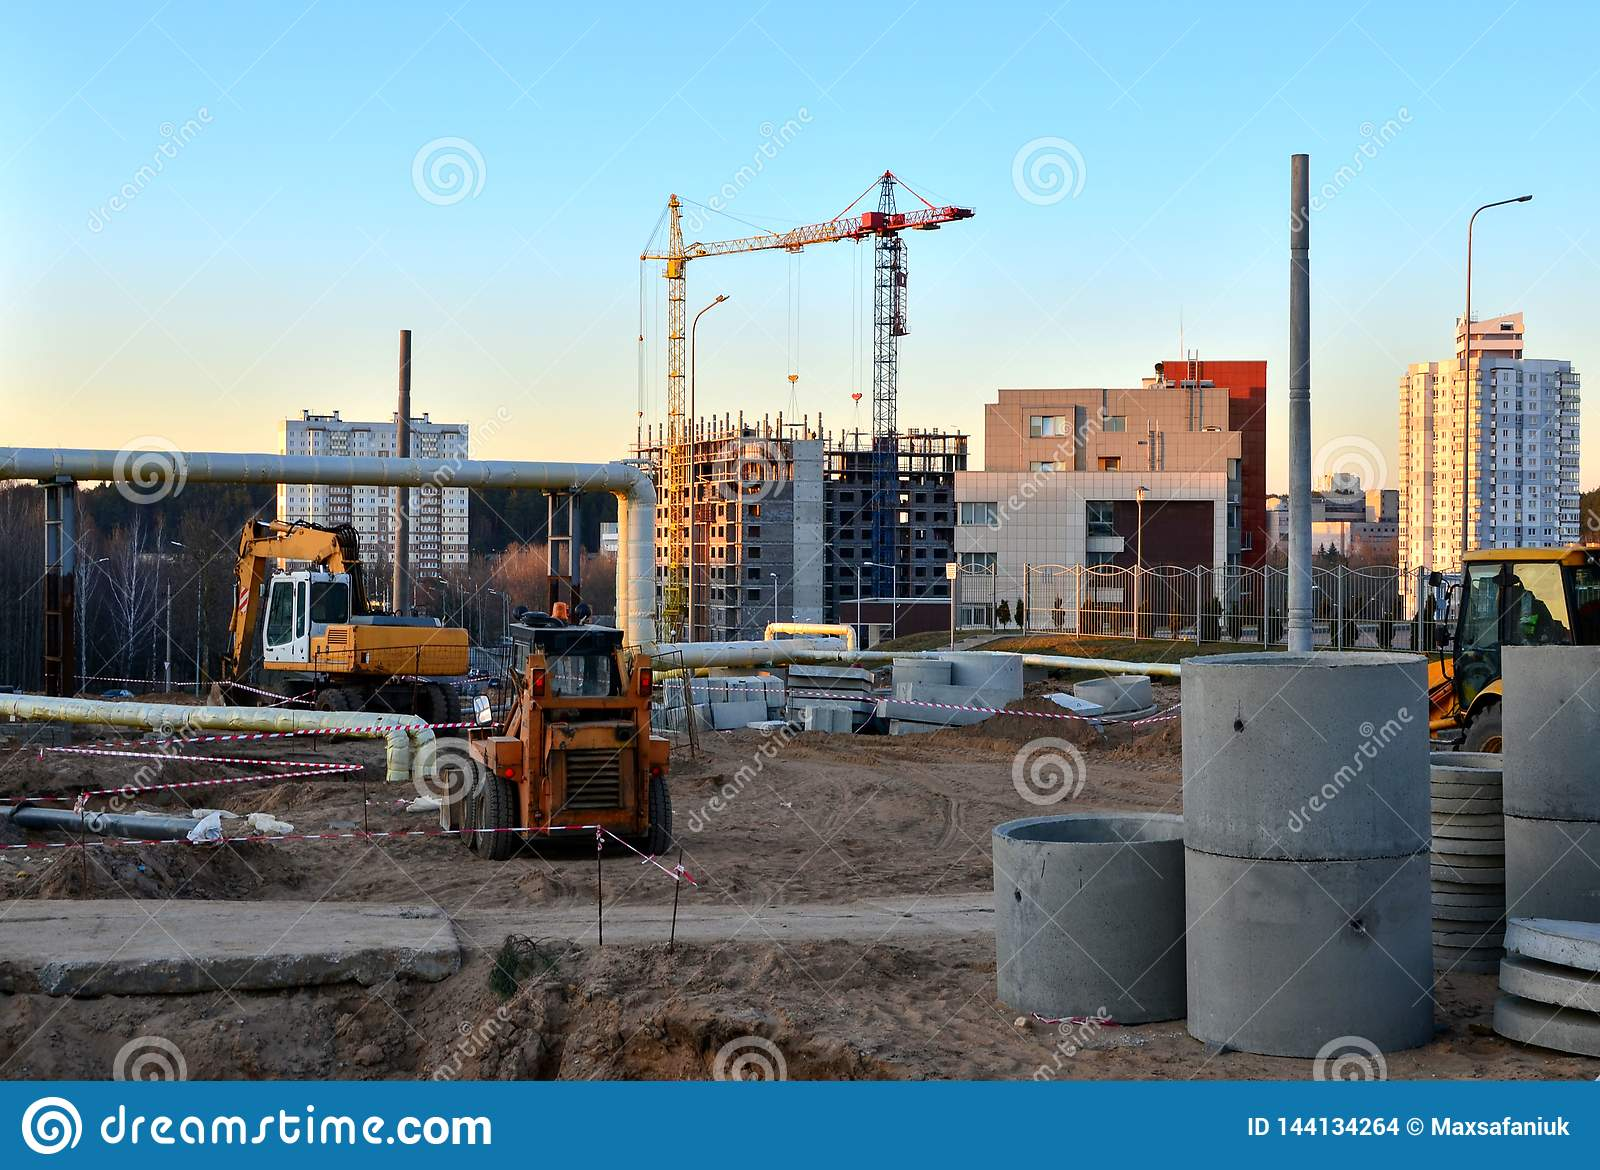 Large construction site with working cranes and heavy machinery for road works, wheel loader, bulldozer, excavator.